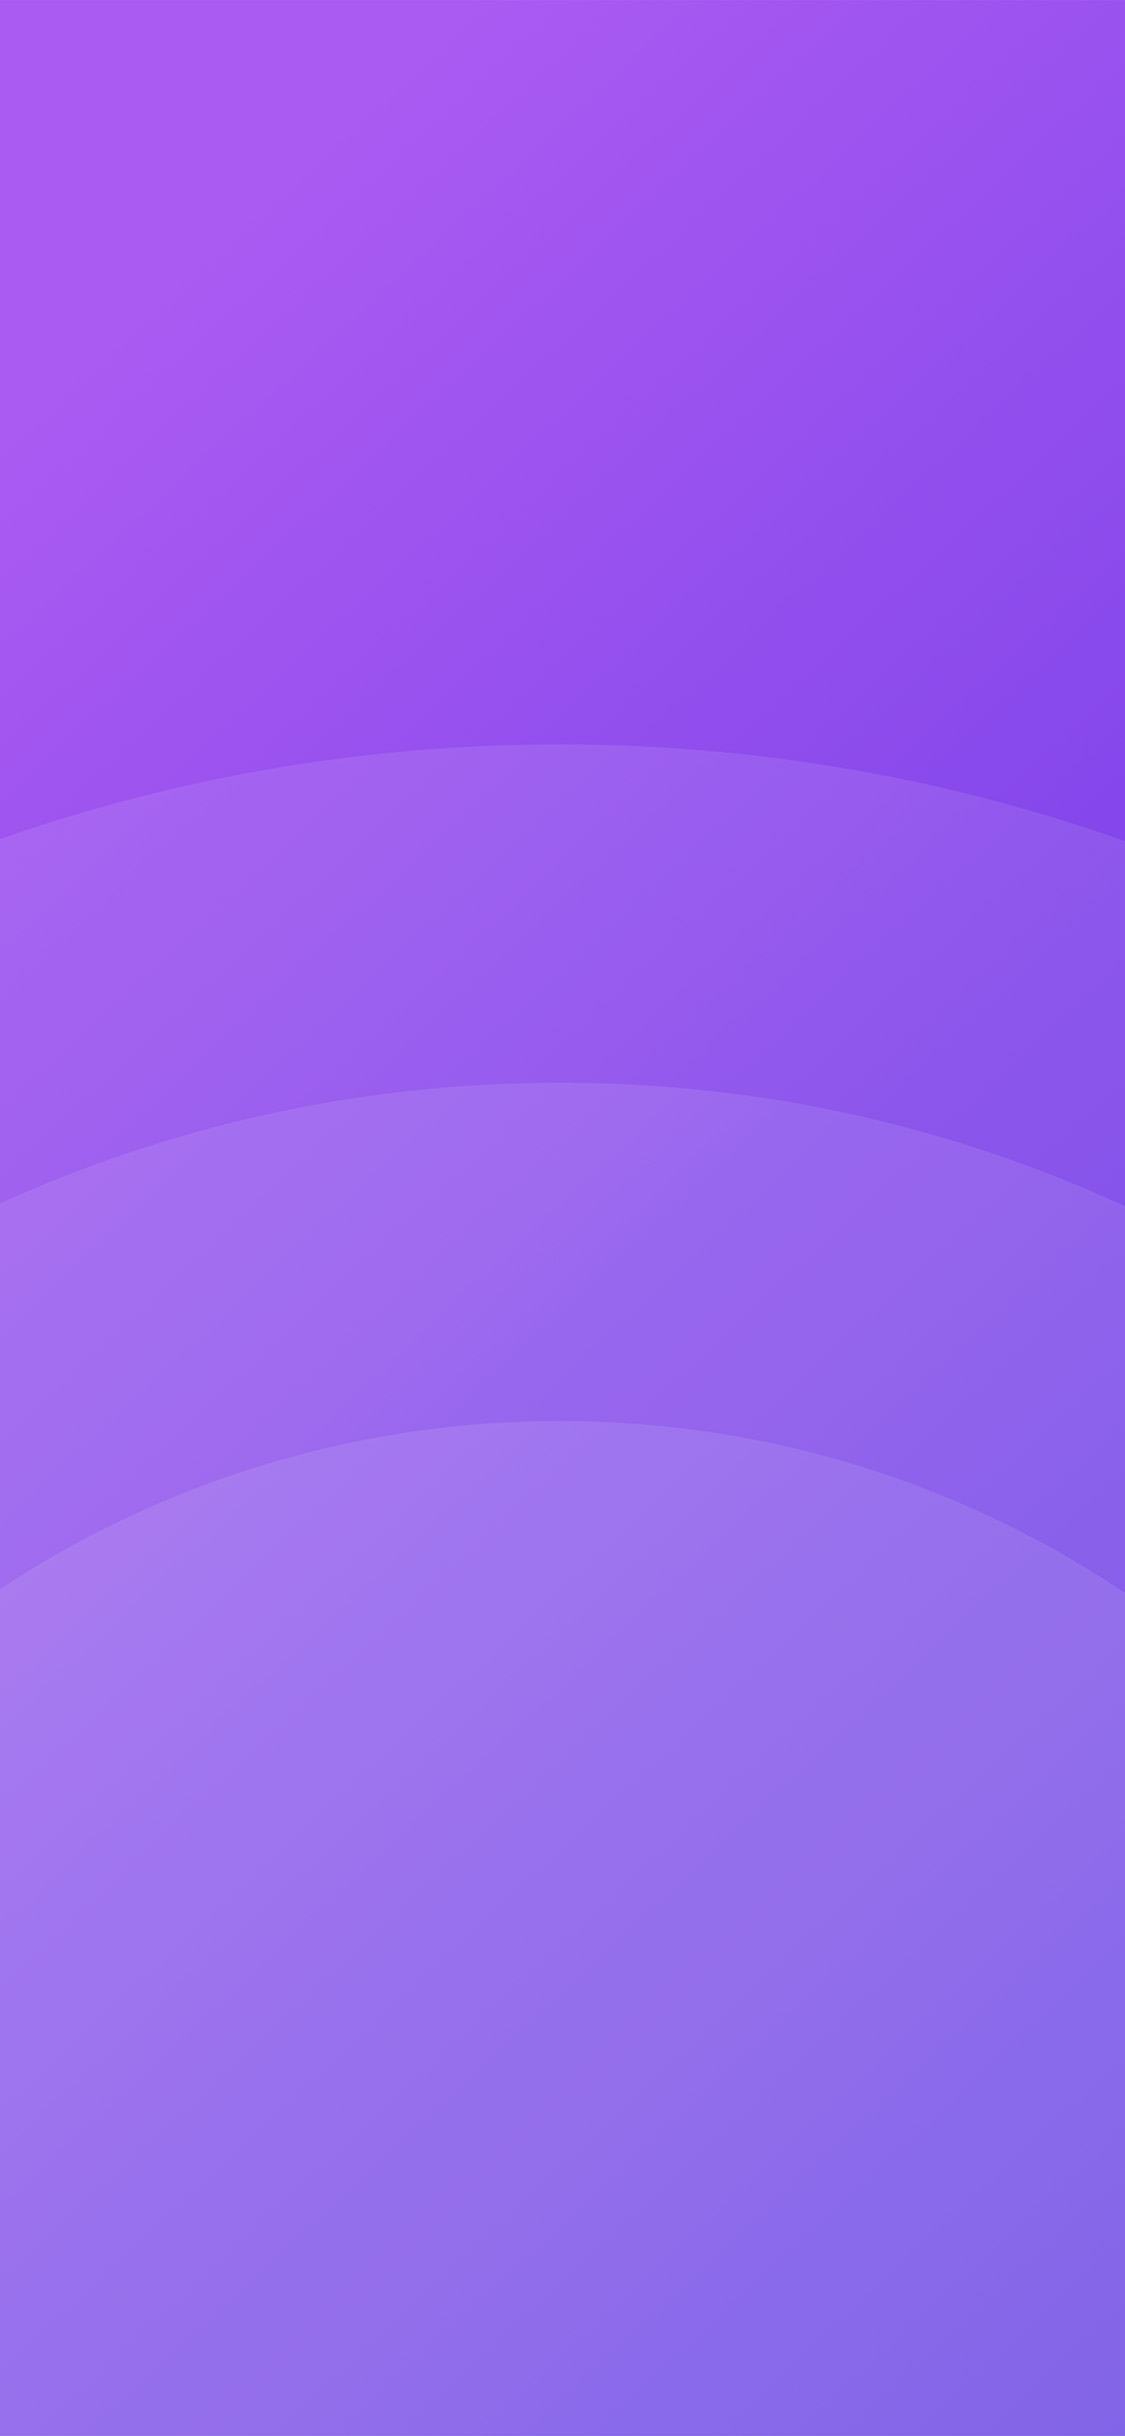 Iphone11papers Com Iphone11 Wallpaper Vy79 Circle Purple Simple Minimal Pattern Background